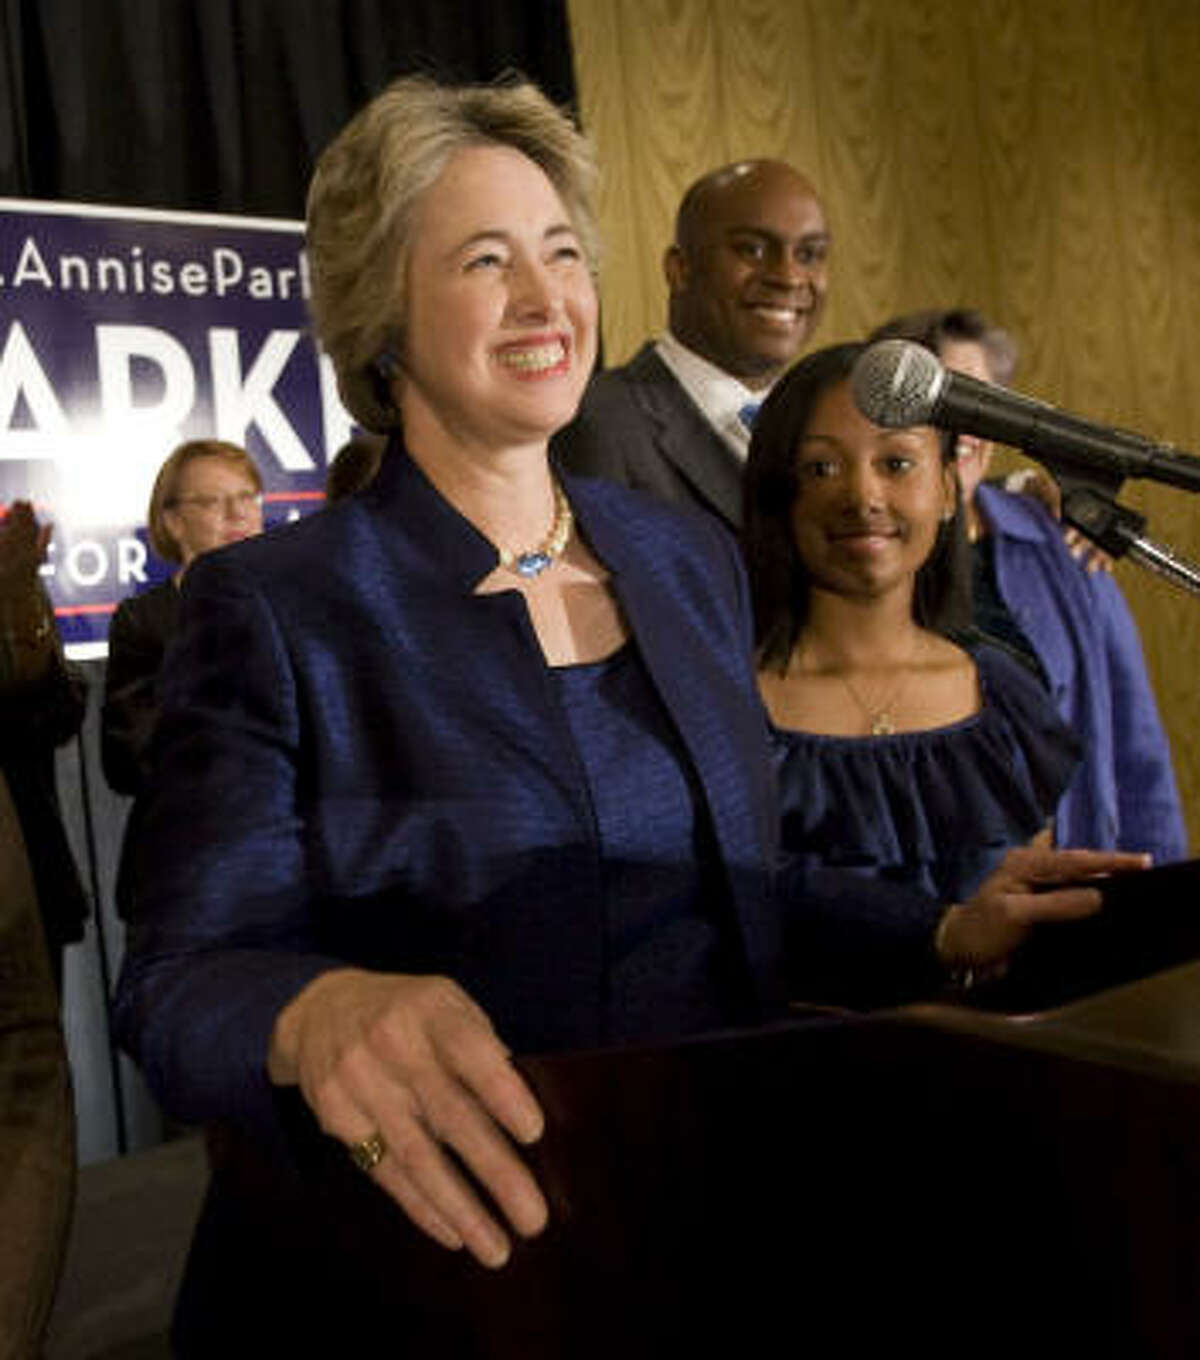 Mayoral candidate Annise Parker smiles as she thanks supporters during an election watch party at the Hilton Americas Tuesday.